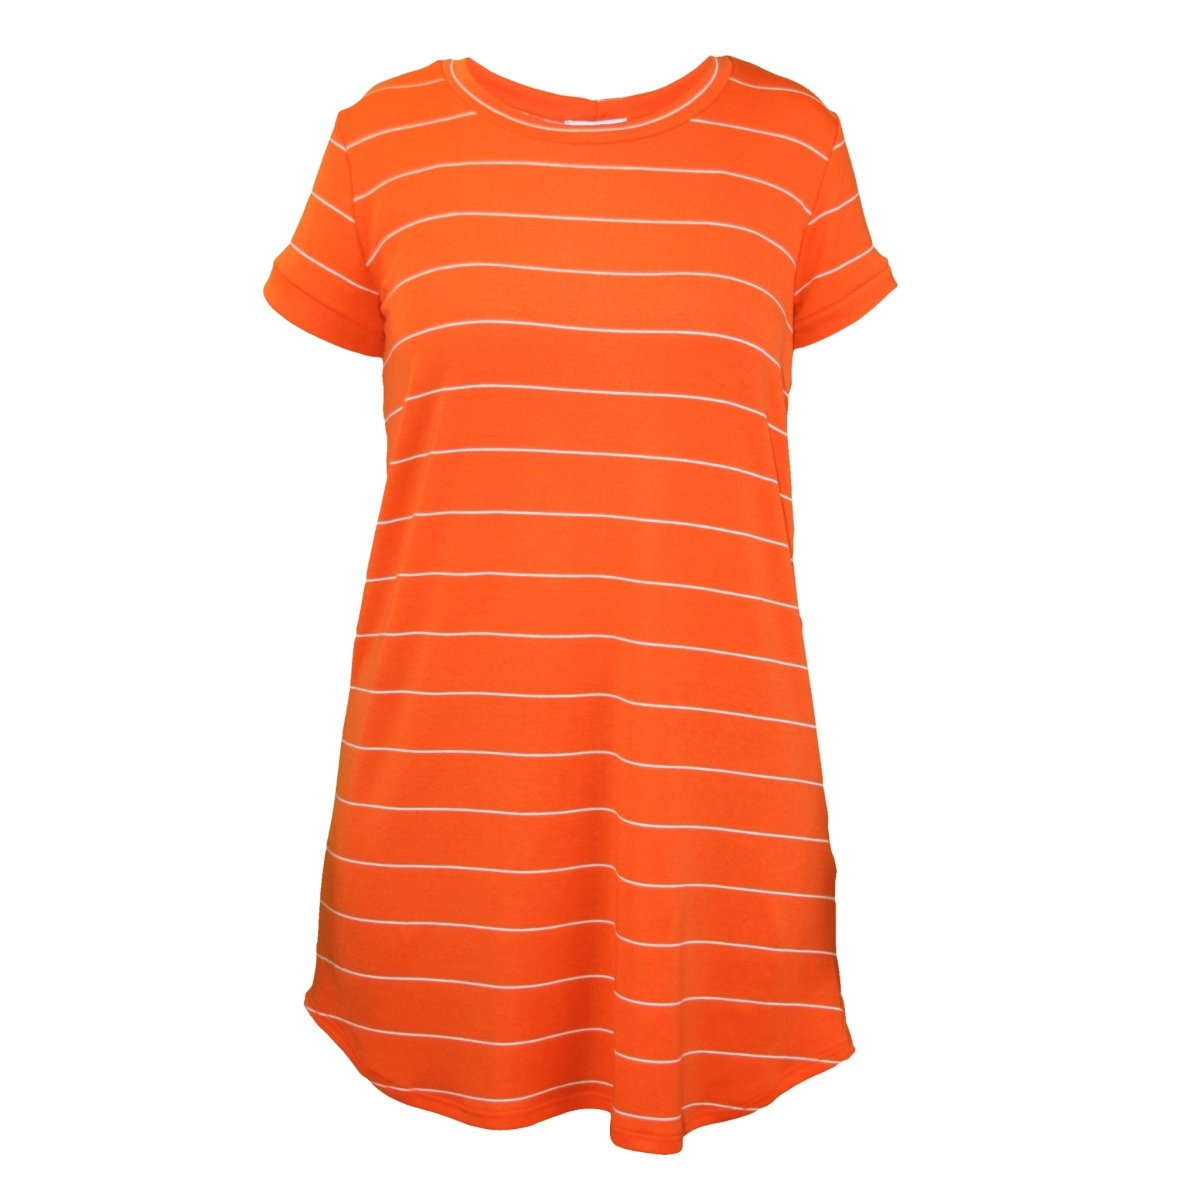 Adrienne Inc Orange Striped T-shirt Dress - Mr. Knickerbocker